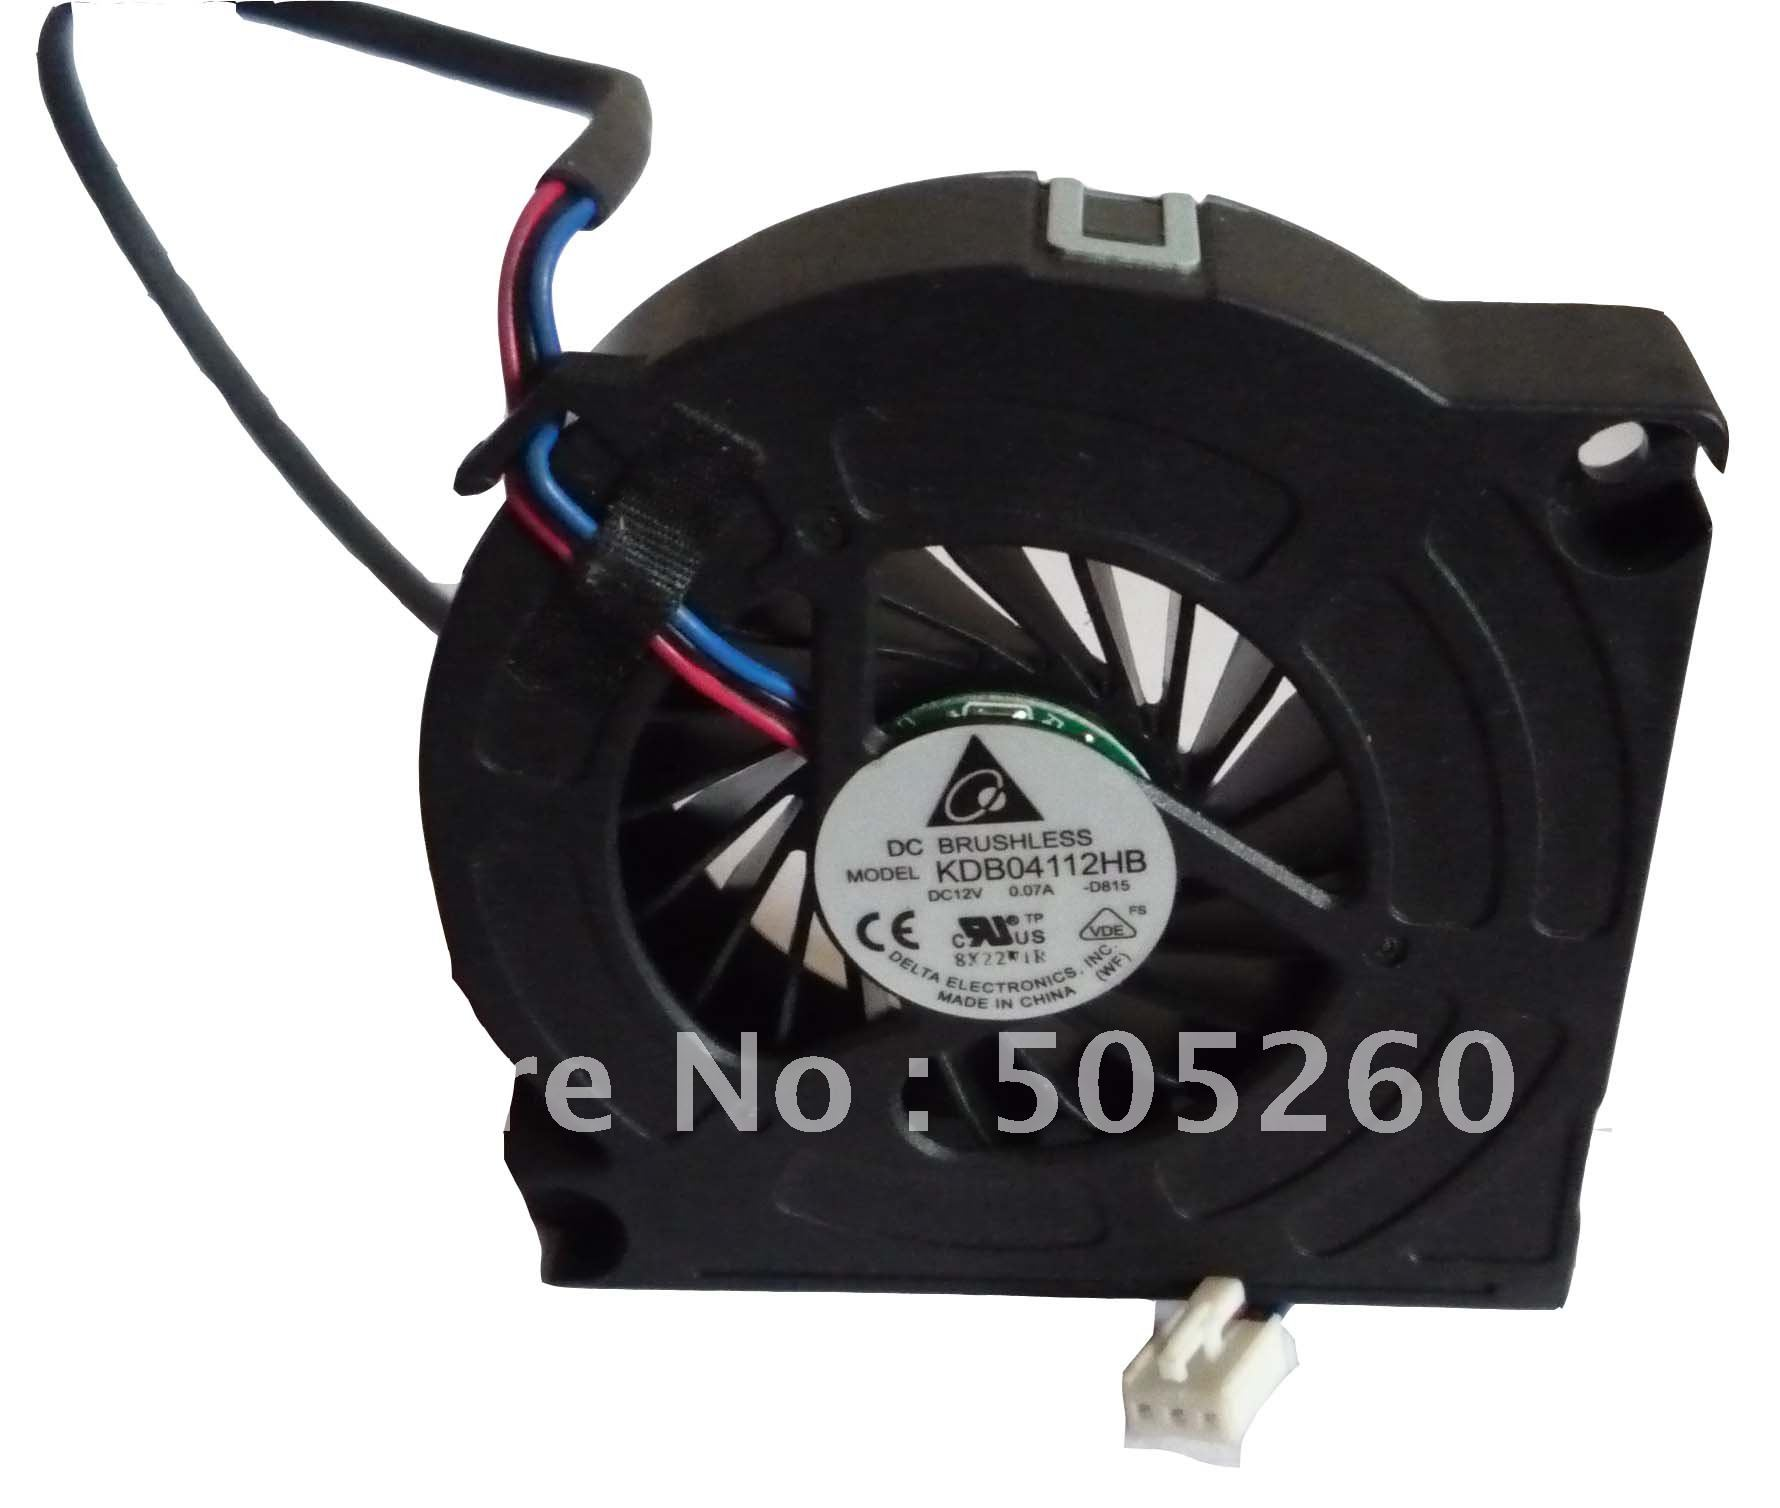 DELTA 6015 12V 0.07A KDB04112HB 6CM Mute blower Projector cooler cooling fan FOR TV SAMSUNG LE40A856S1 LE52A856S1MXXC опель корса б у продаю в москве